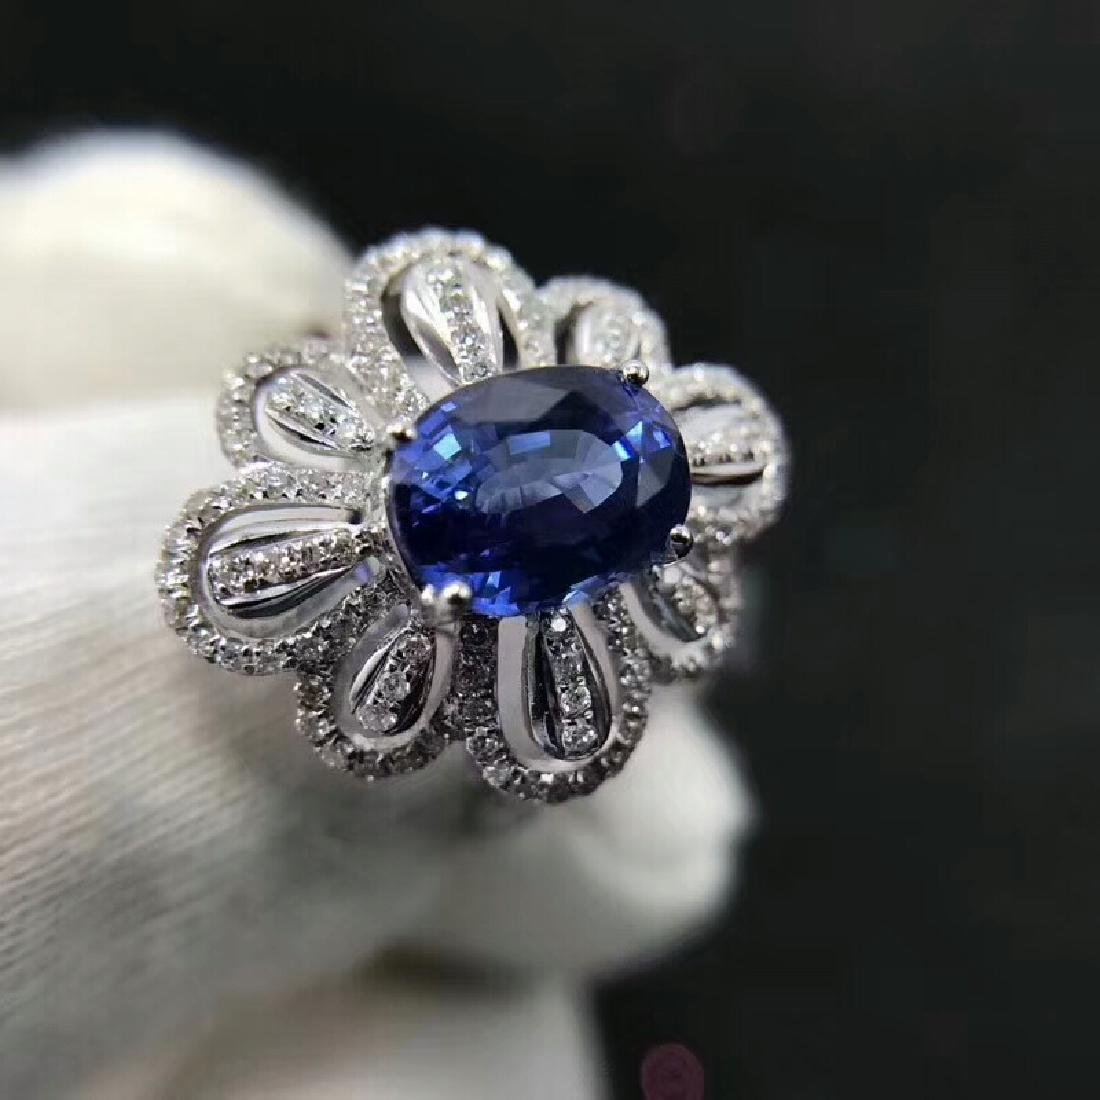 1.94ct Sapphire Ring in 18kt White Gold - 6